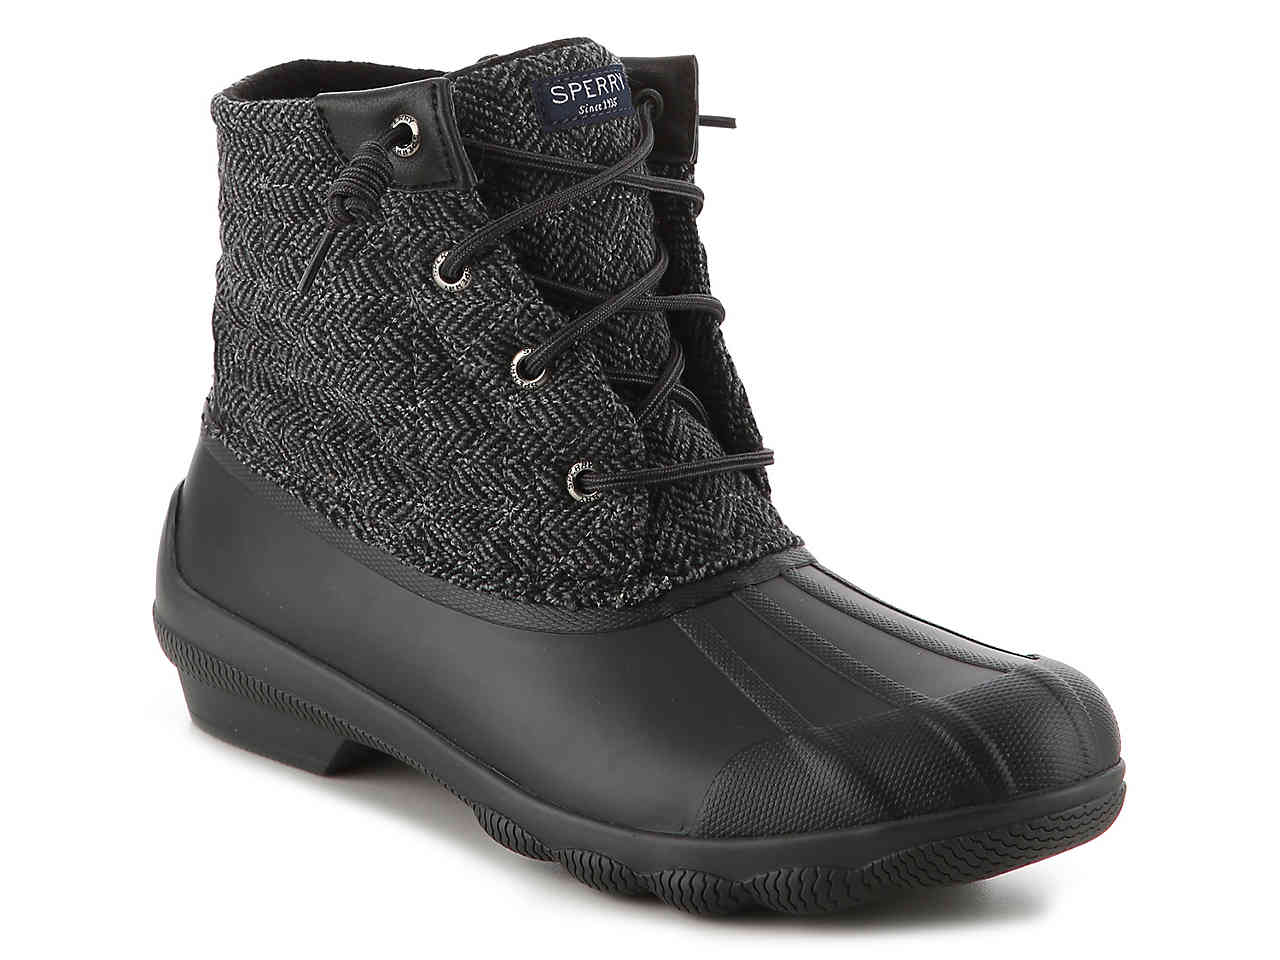 Dsw Sperry Duck Boots Only 80 Reg 120 Shipped